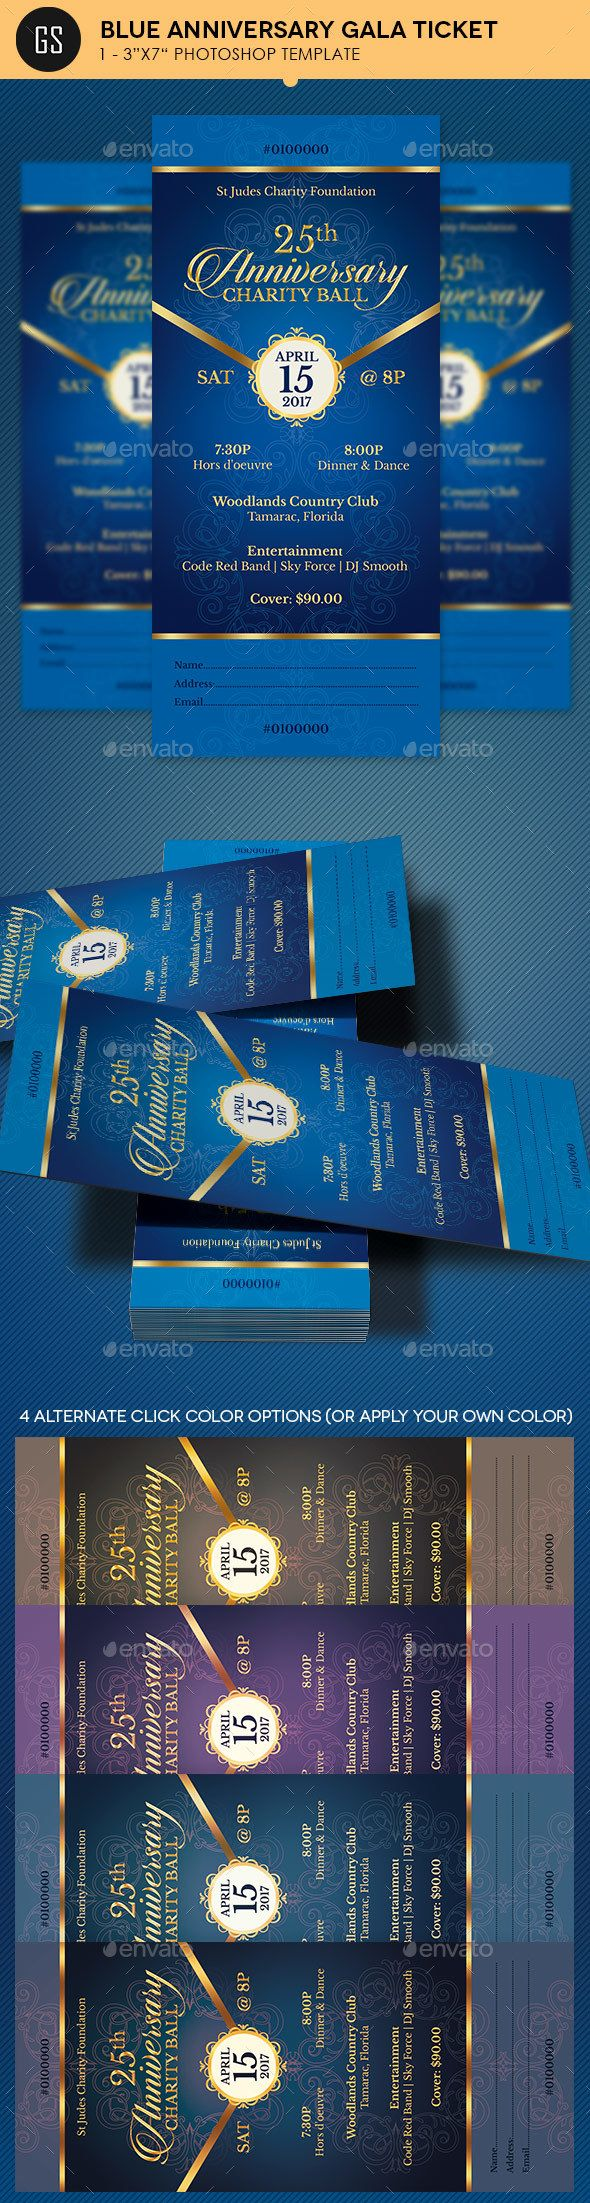 Blue Anniversary Gala Ticket Template